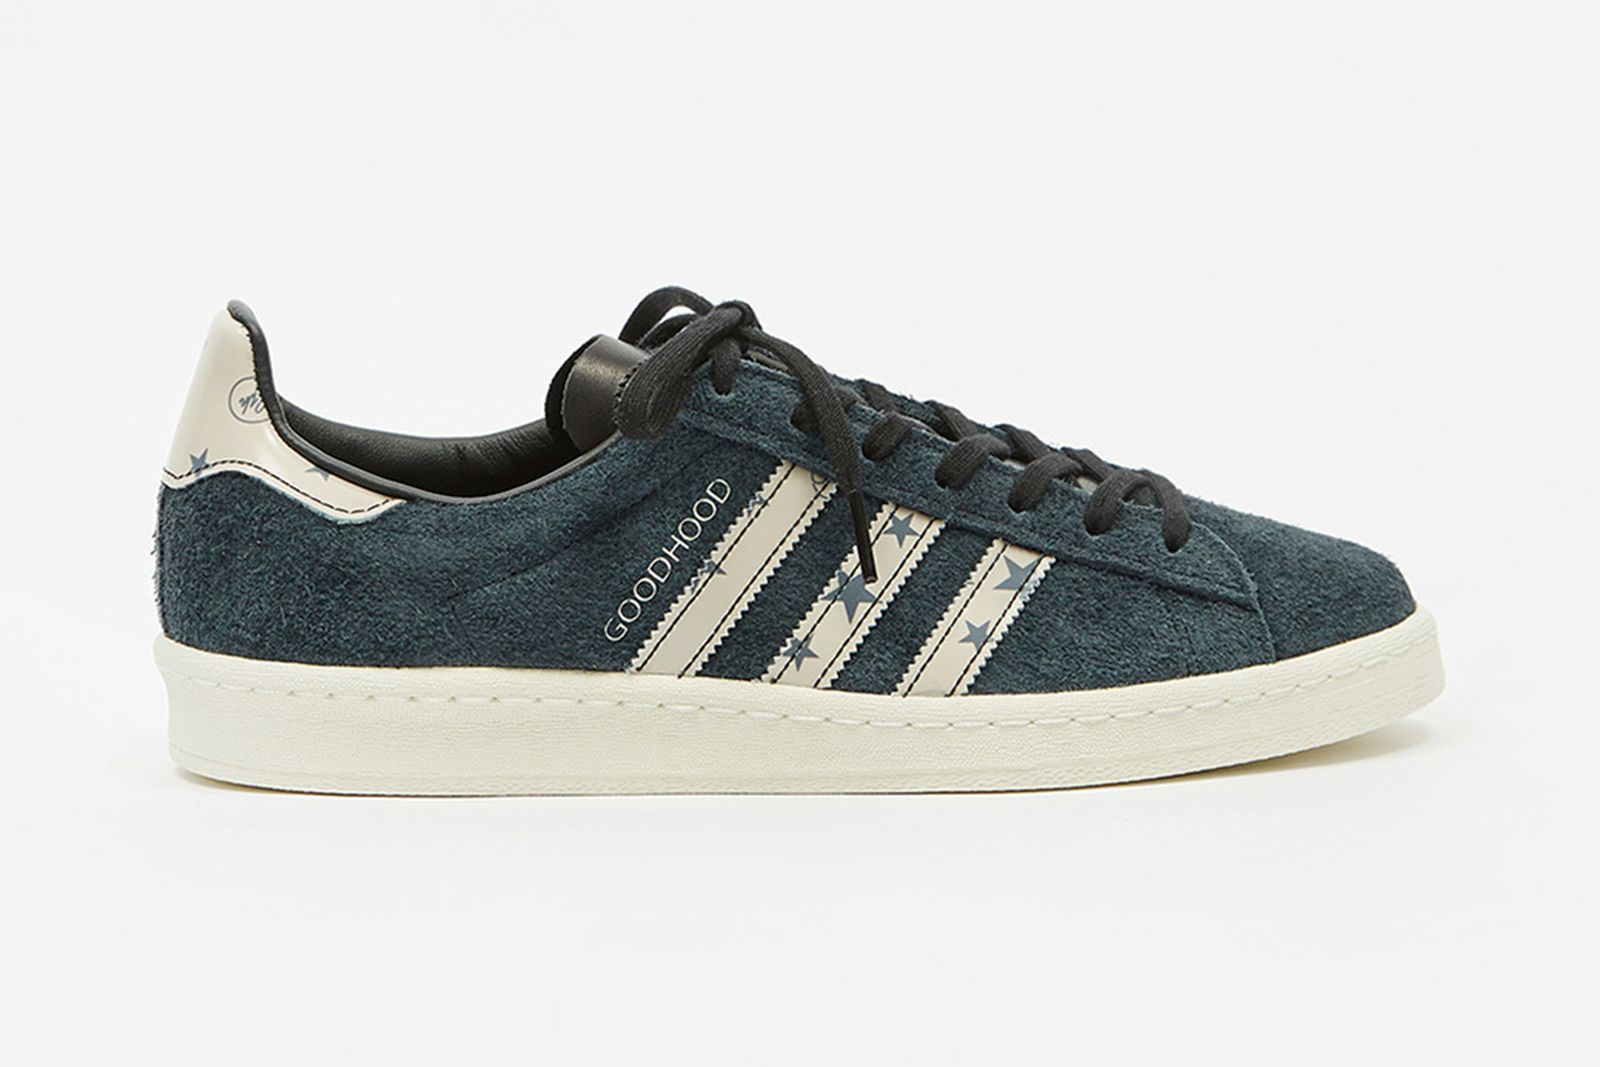 goodhood-adidas-campus-80s-release-date-price-03